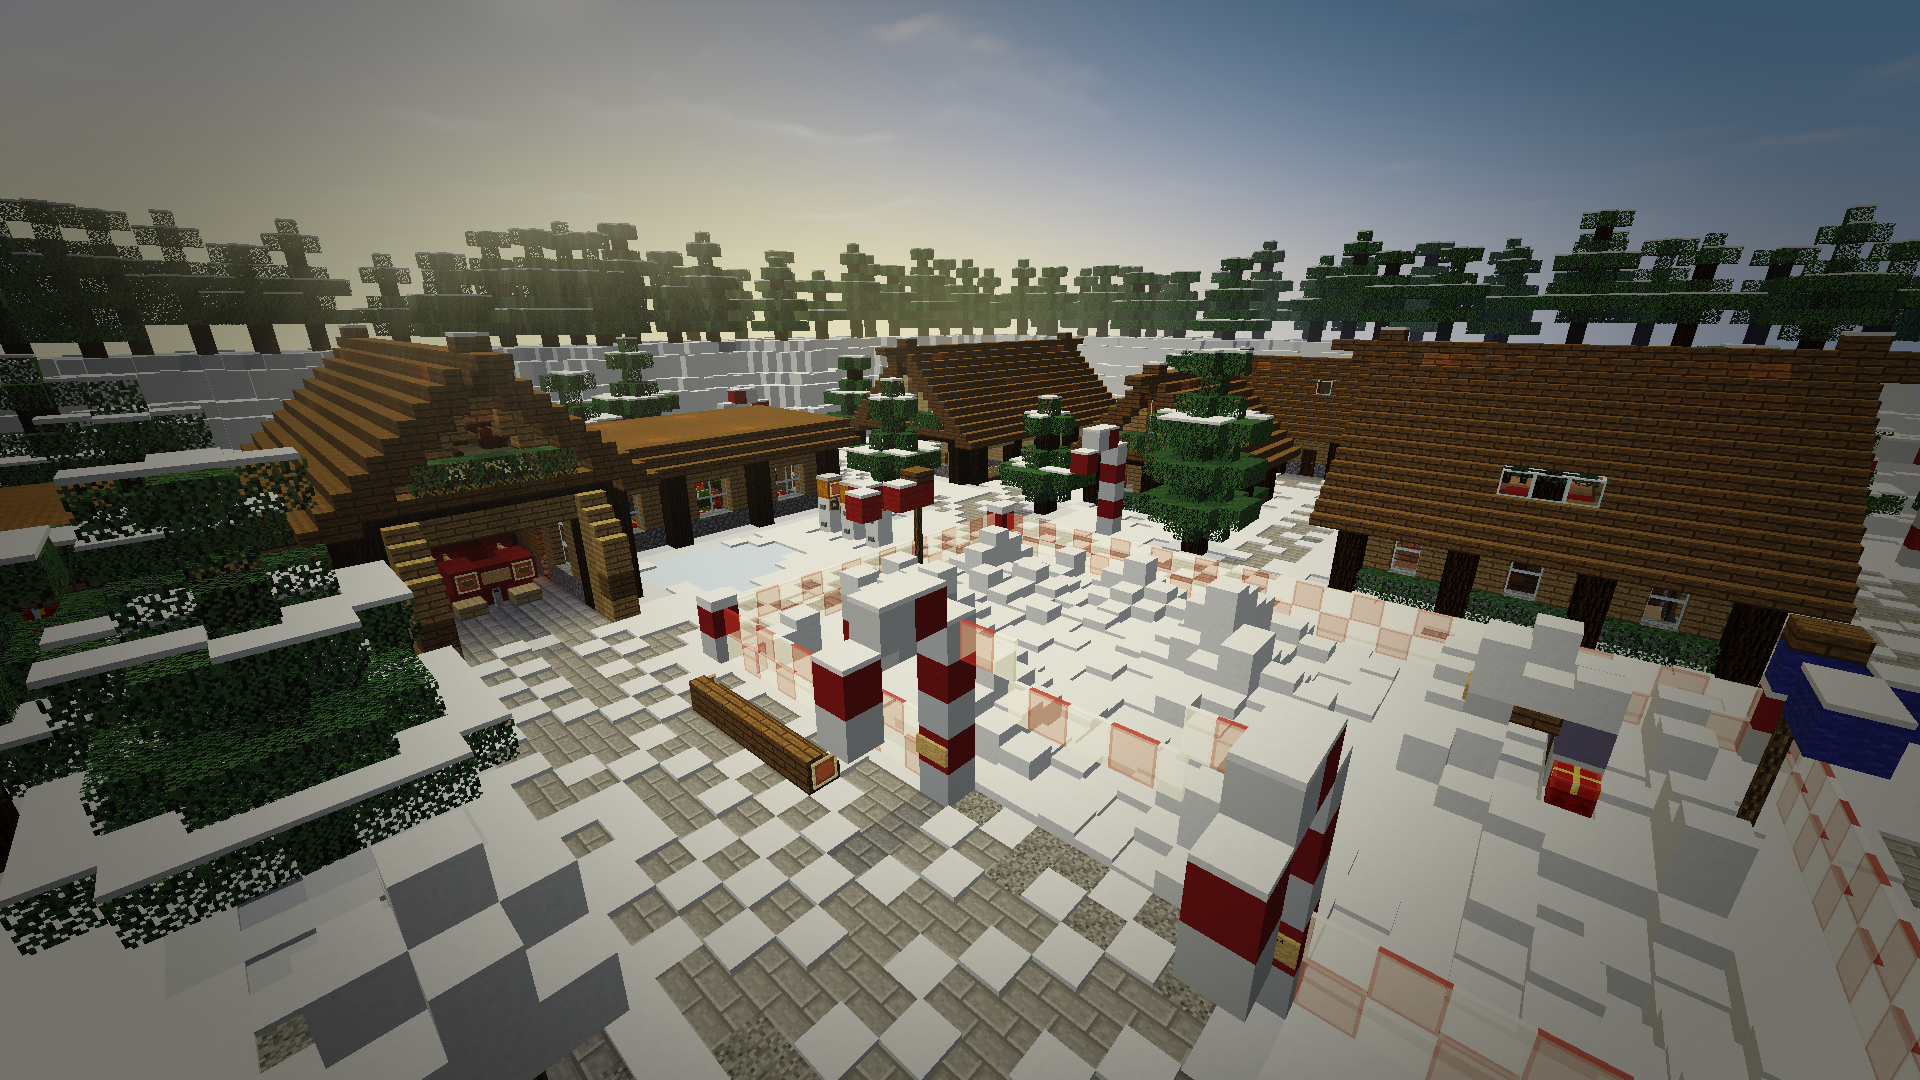 Minecraft Christmas Map.Download Santa S Christmas Village 3 Mb Map For Minecraft